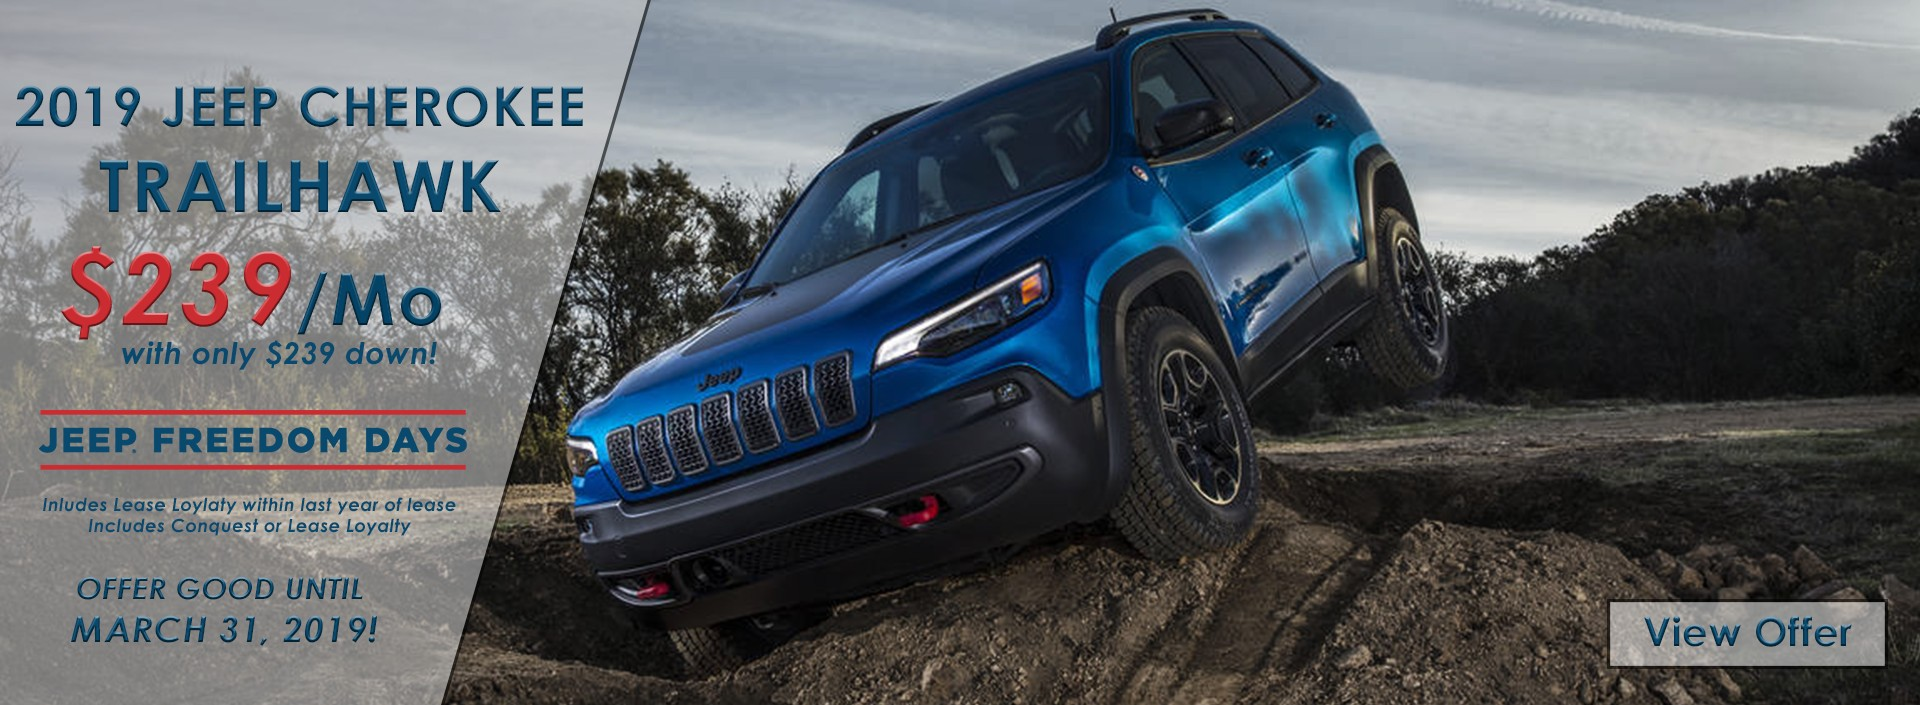 Jeep Cherokee Trailhawk Special